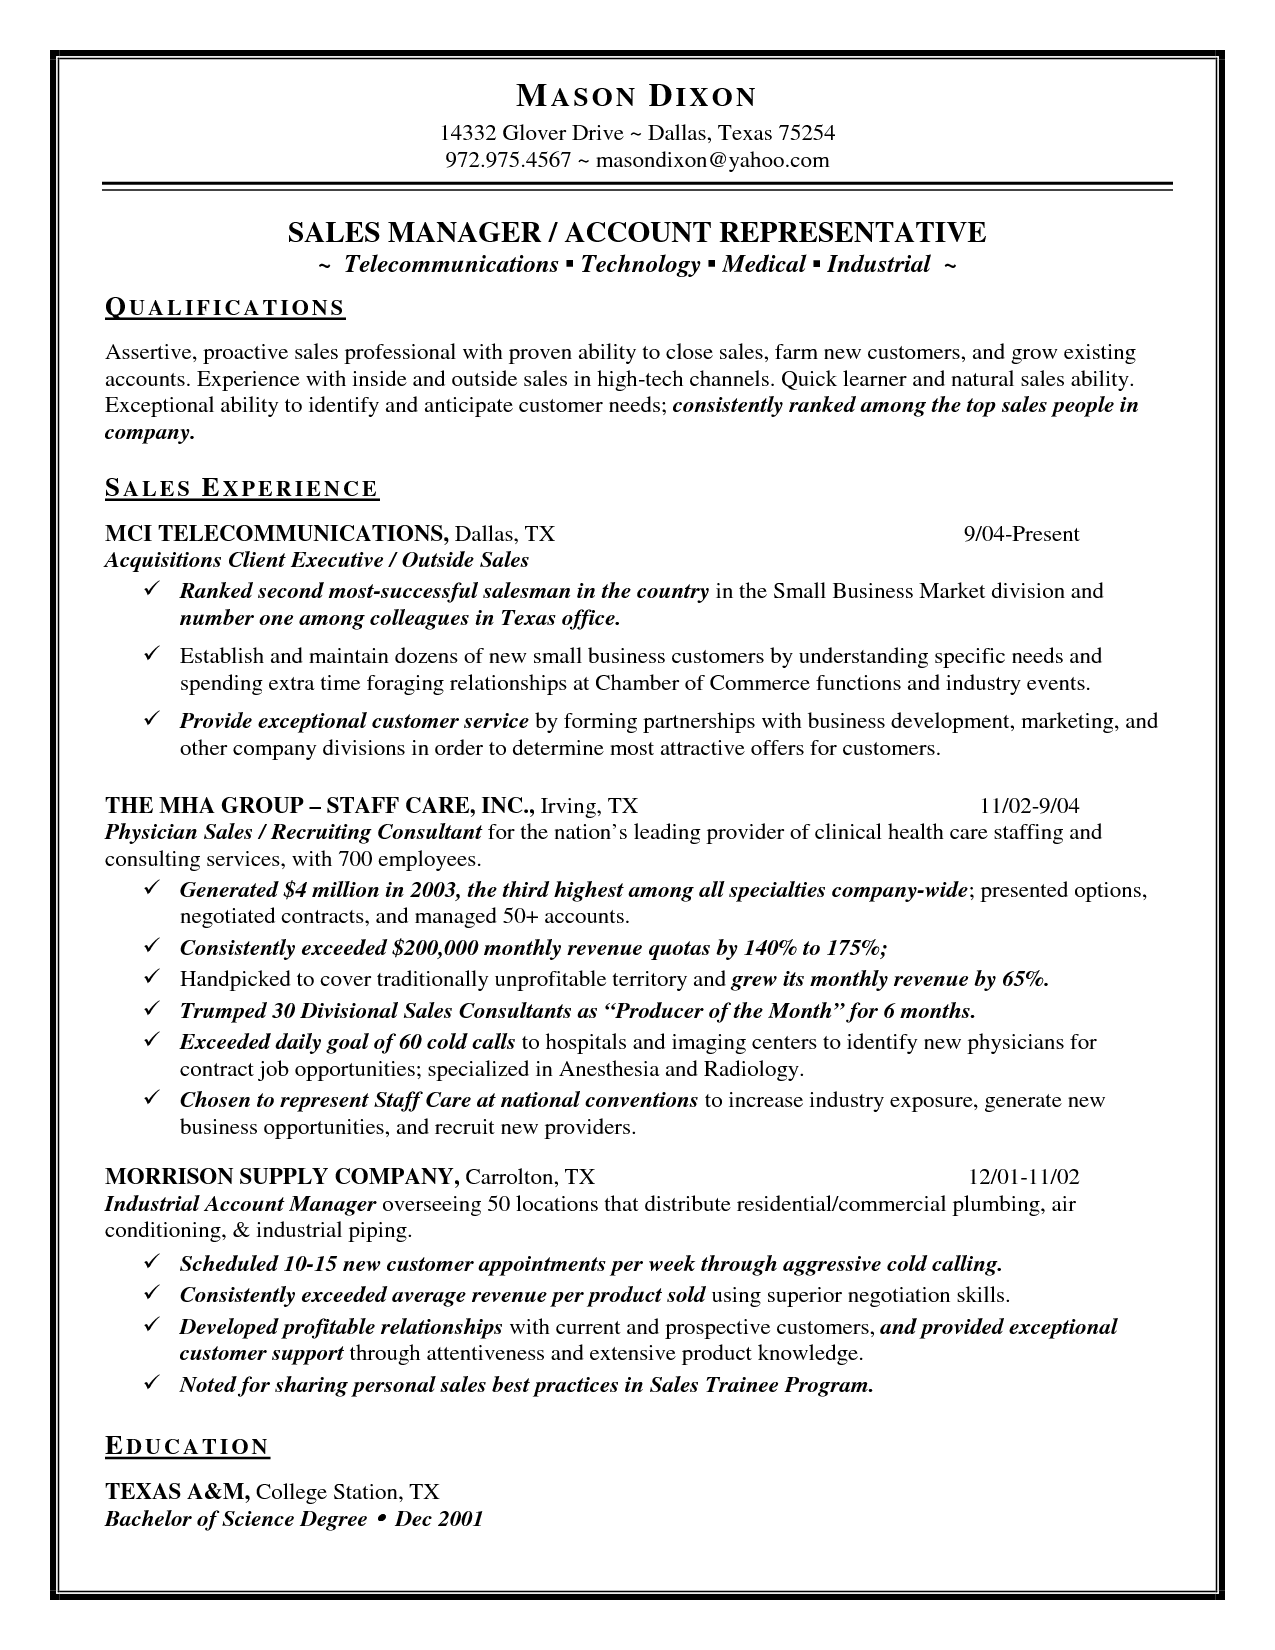 Resume Examples Quick Learner Sales resume examples